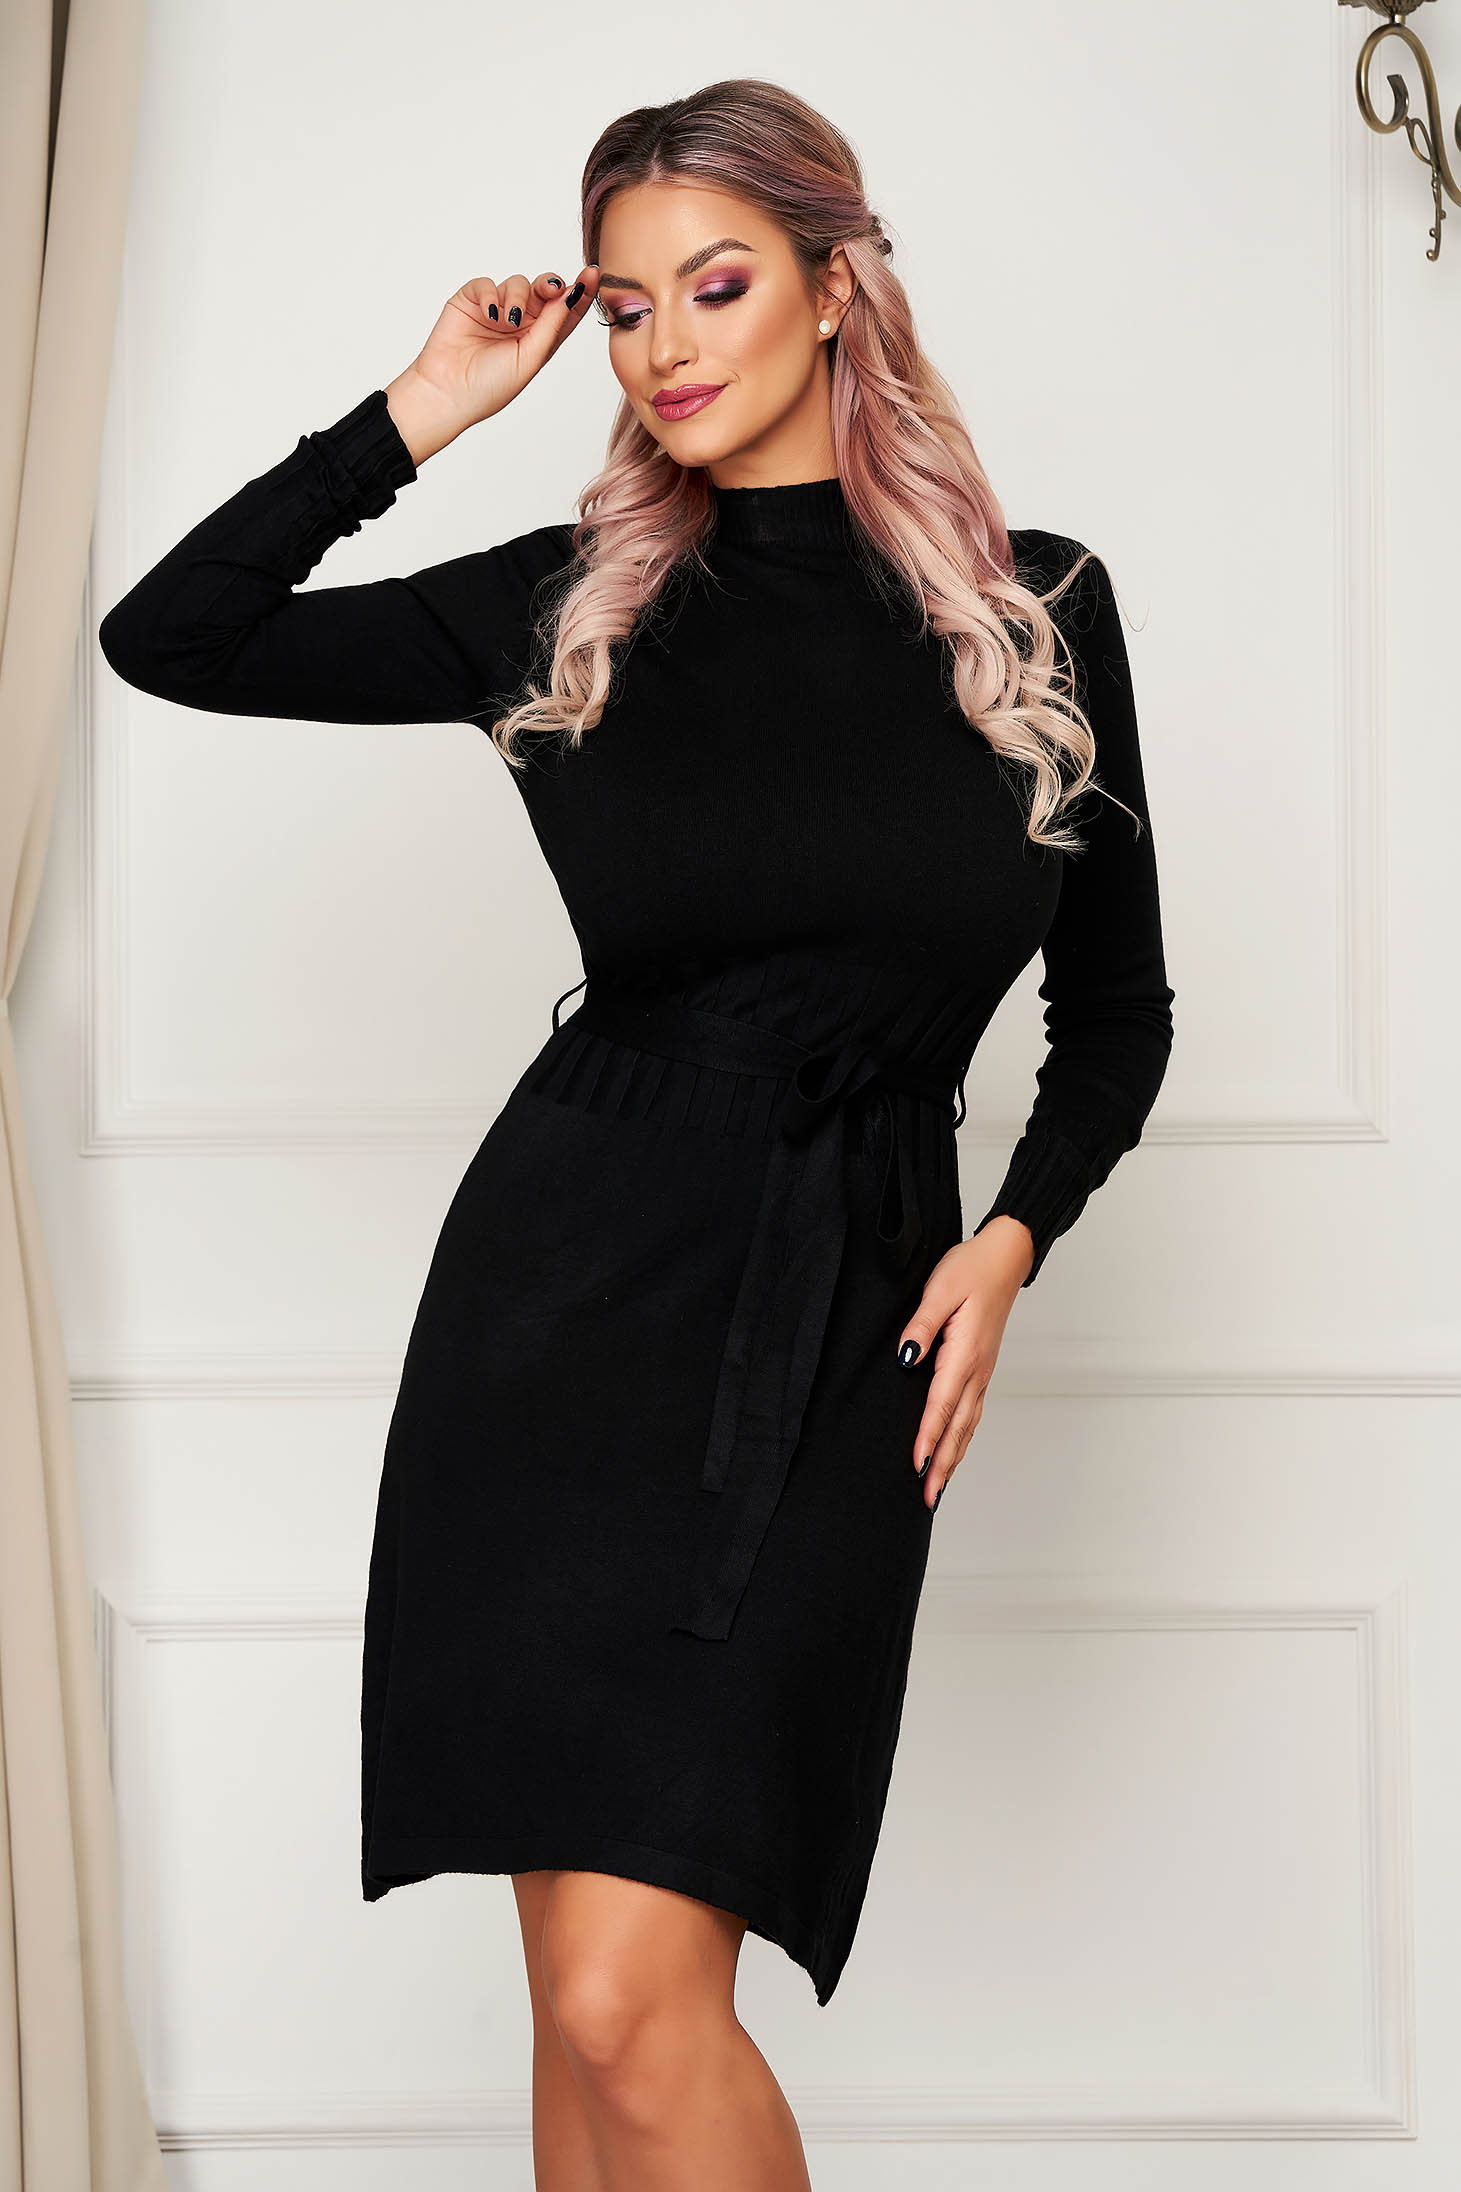 Black dress short cut daily knitted with straight cut with turtle neck